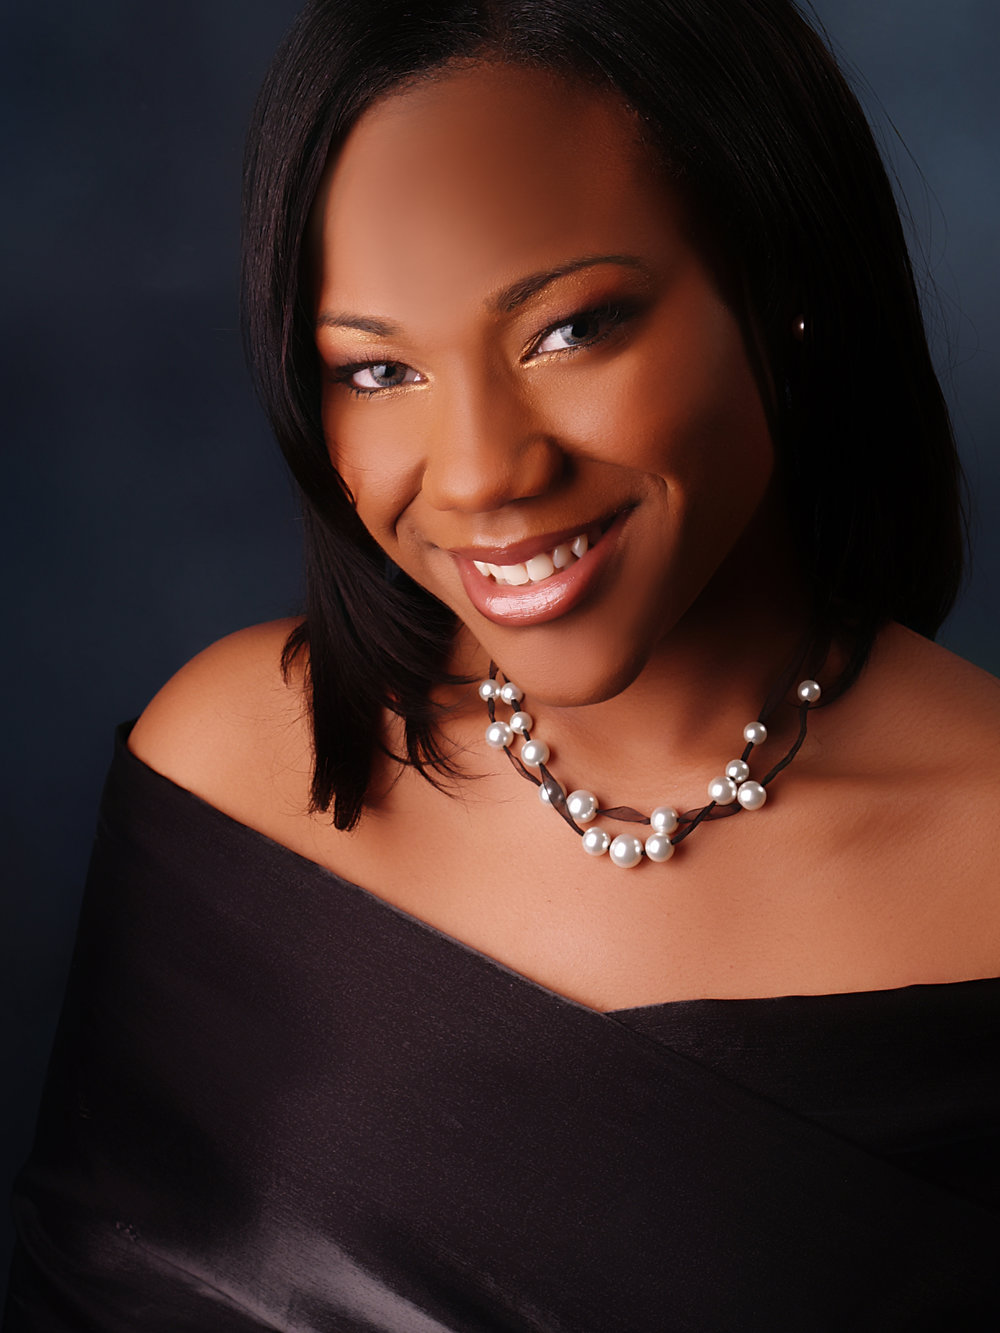 Courtney Johnson Soprano Is Currently A Graduate Student At Mannes College Of Music In New York A Native Of Chesapeake Va She Studied At The Virginia